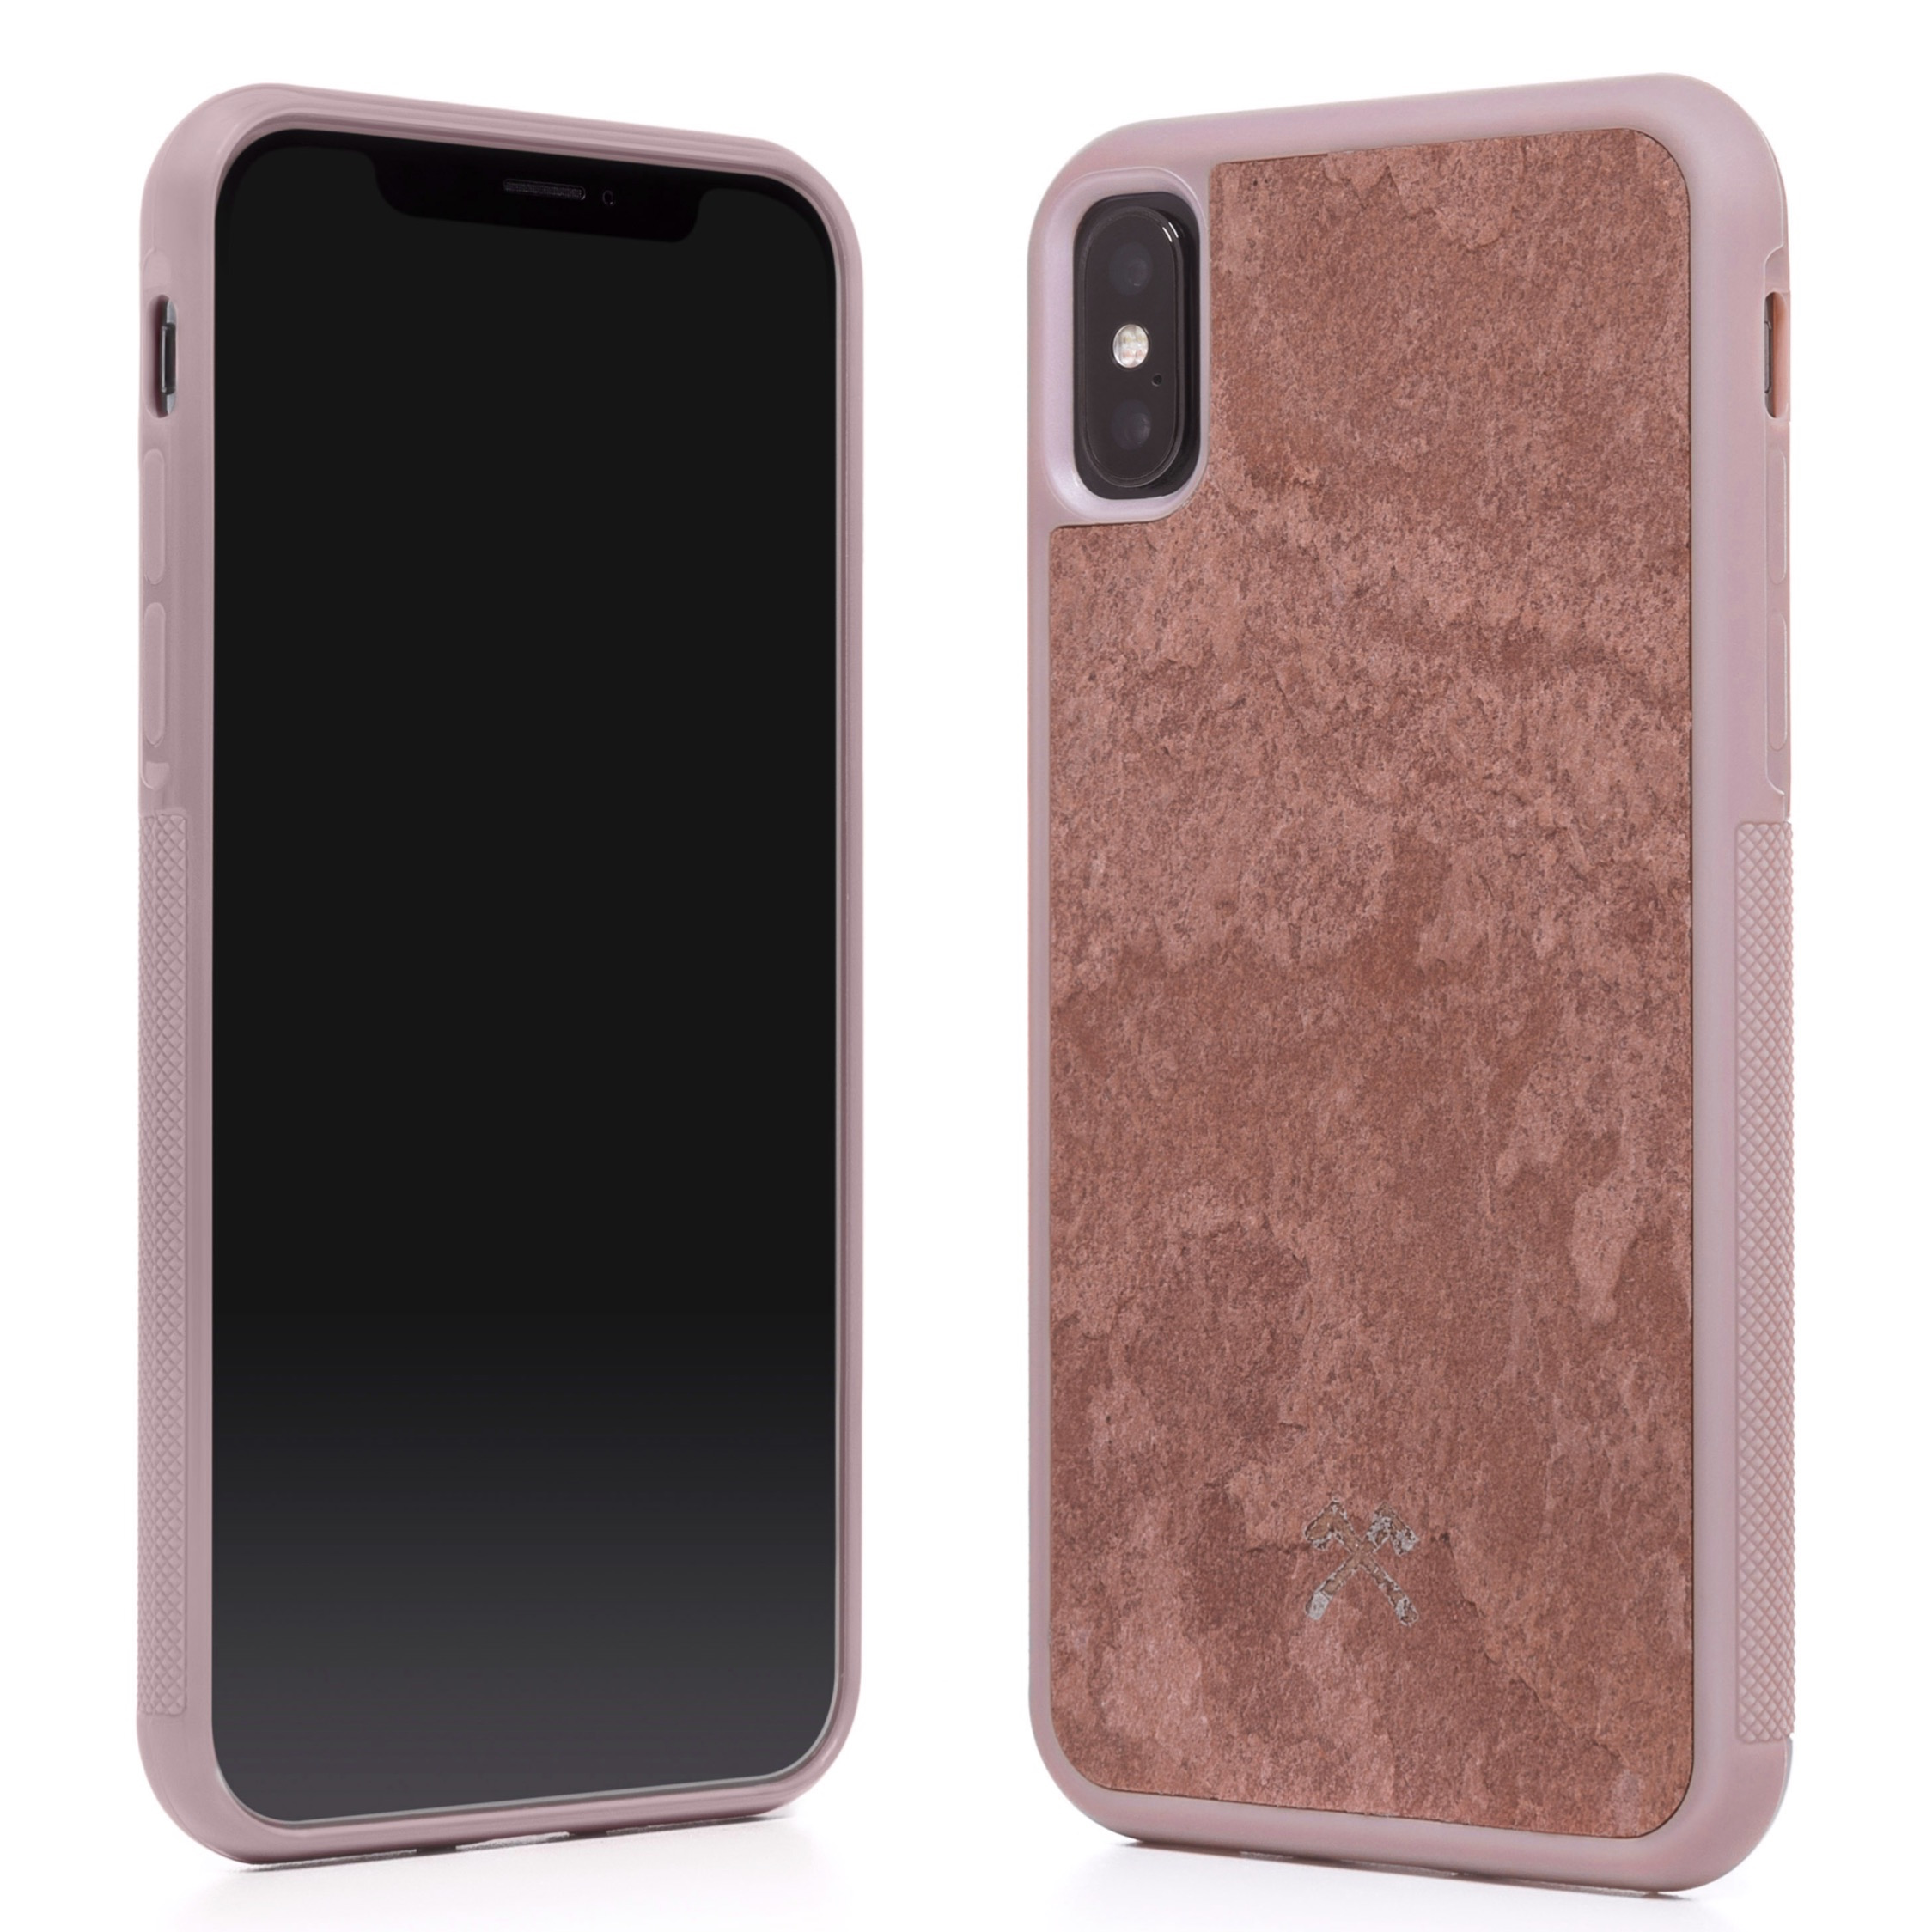 st012 red stone iPhone X-3.jpg